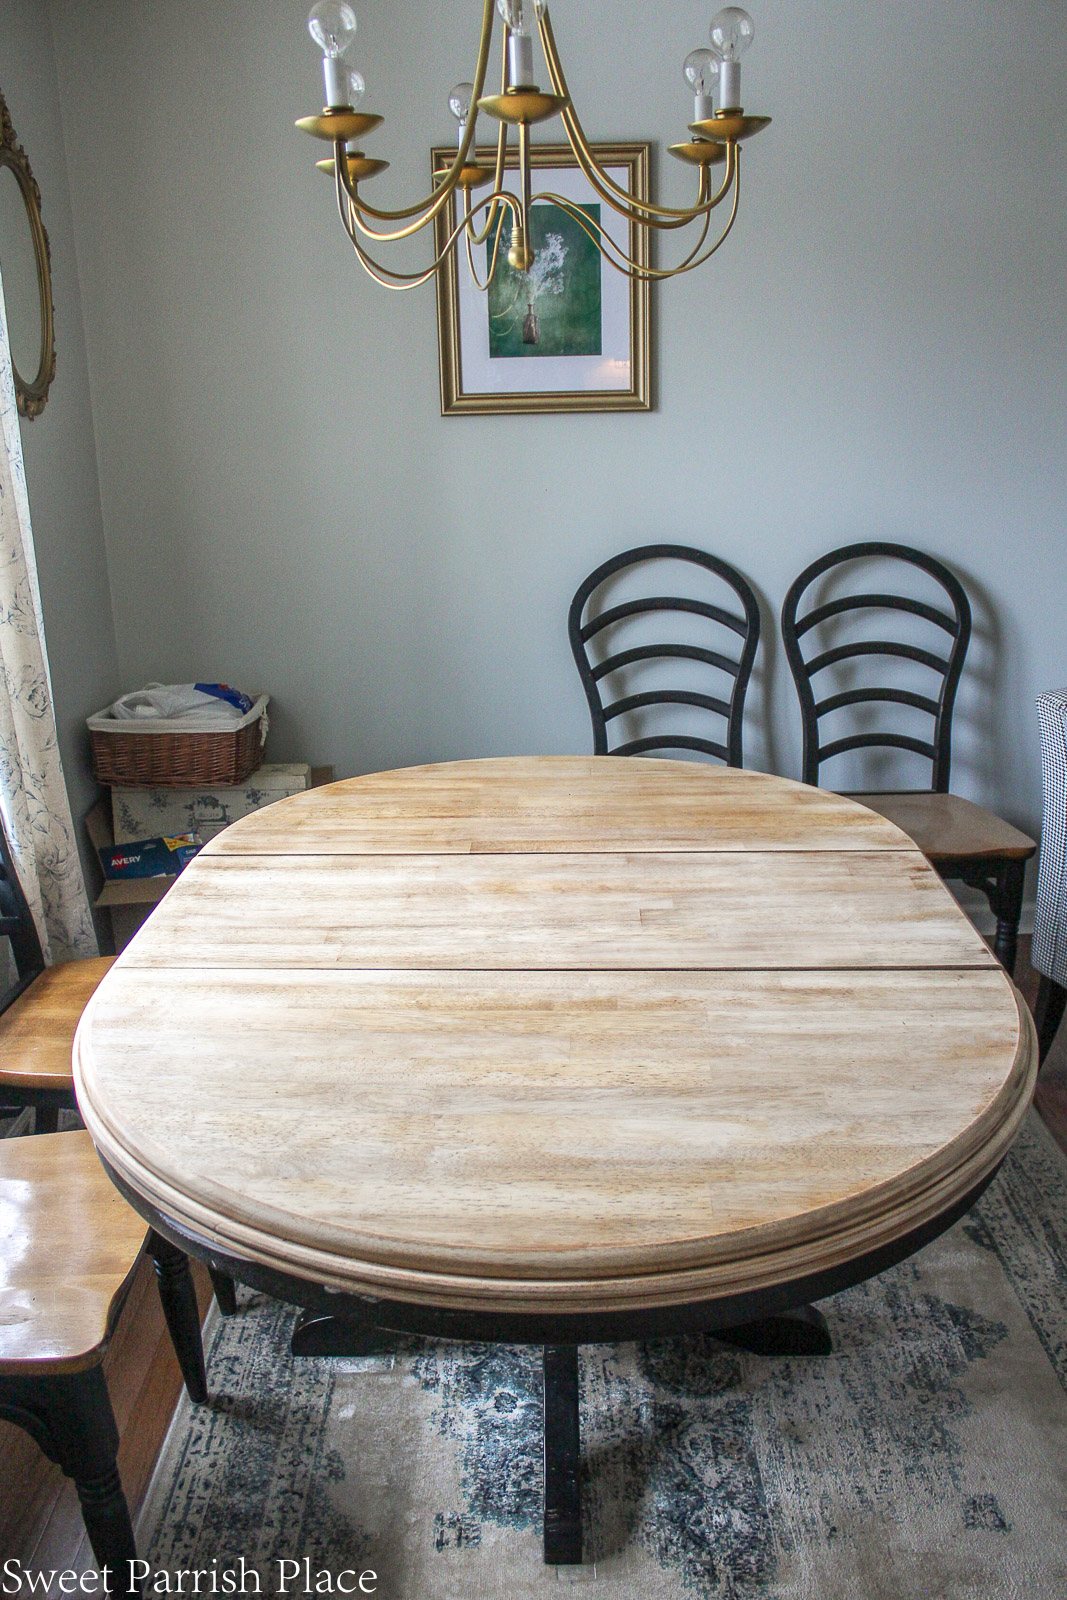 table top stripped down to natural wood